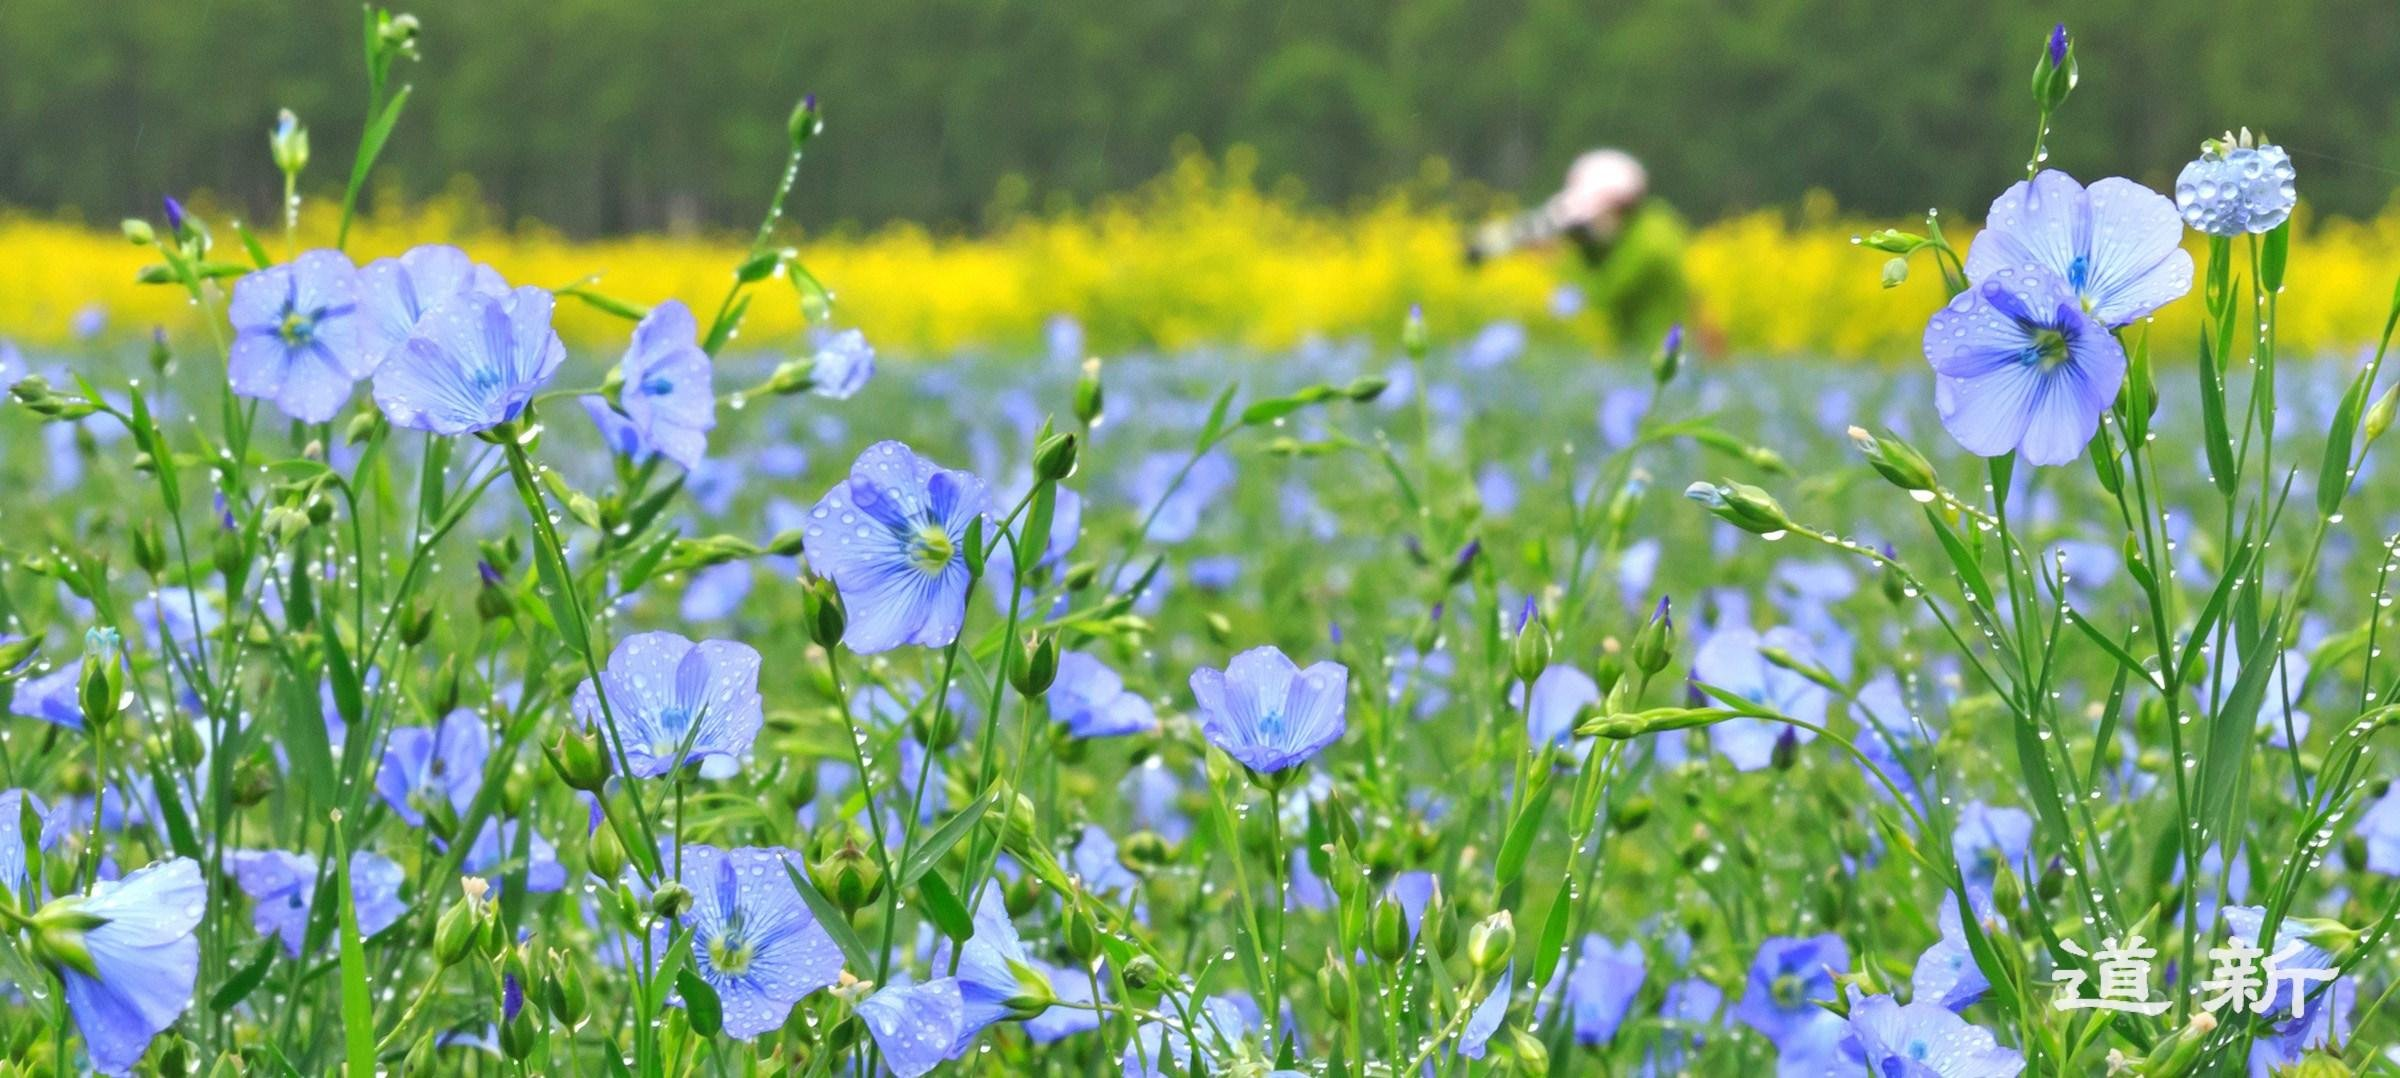 Photo:Cool violet color of the flax flower